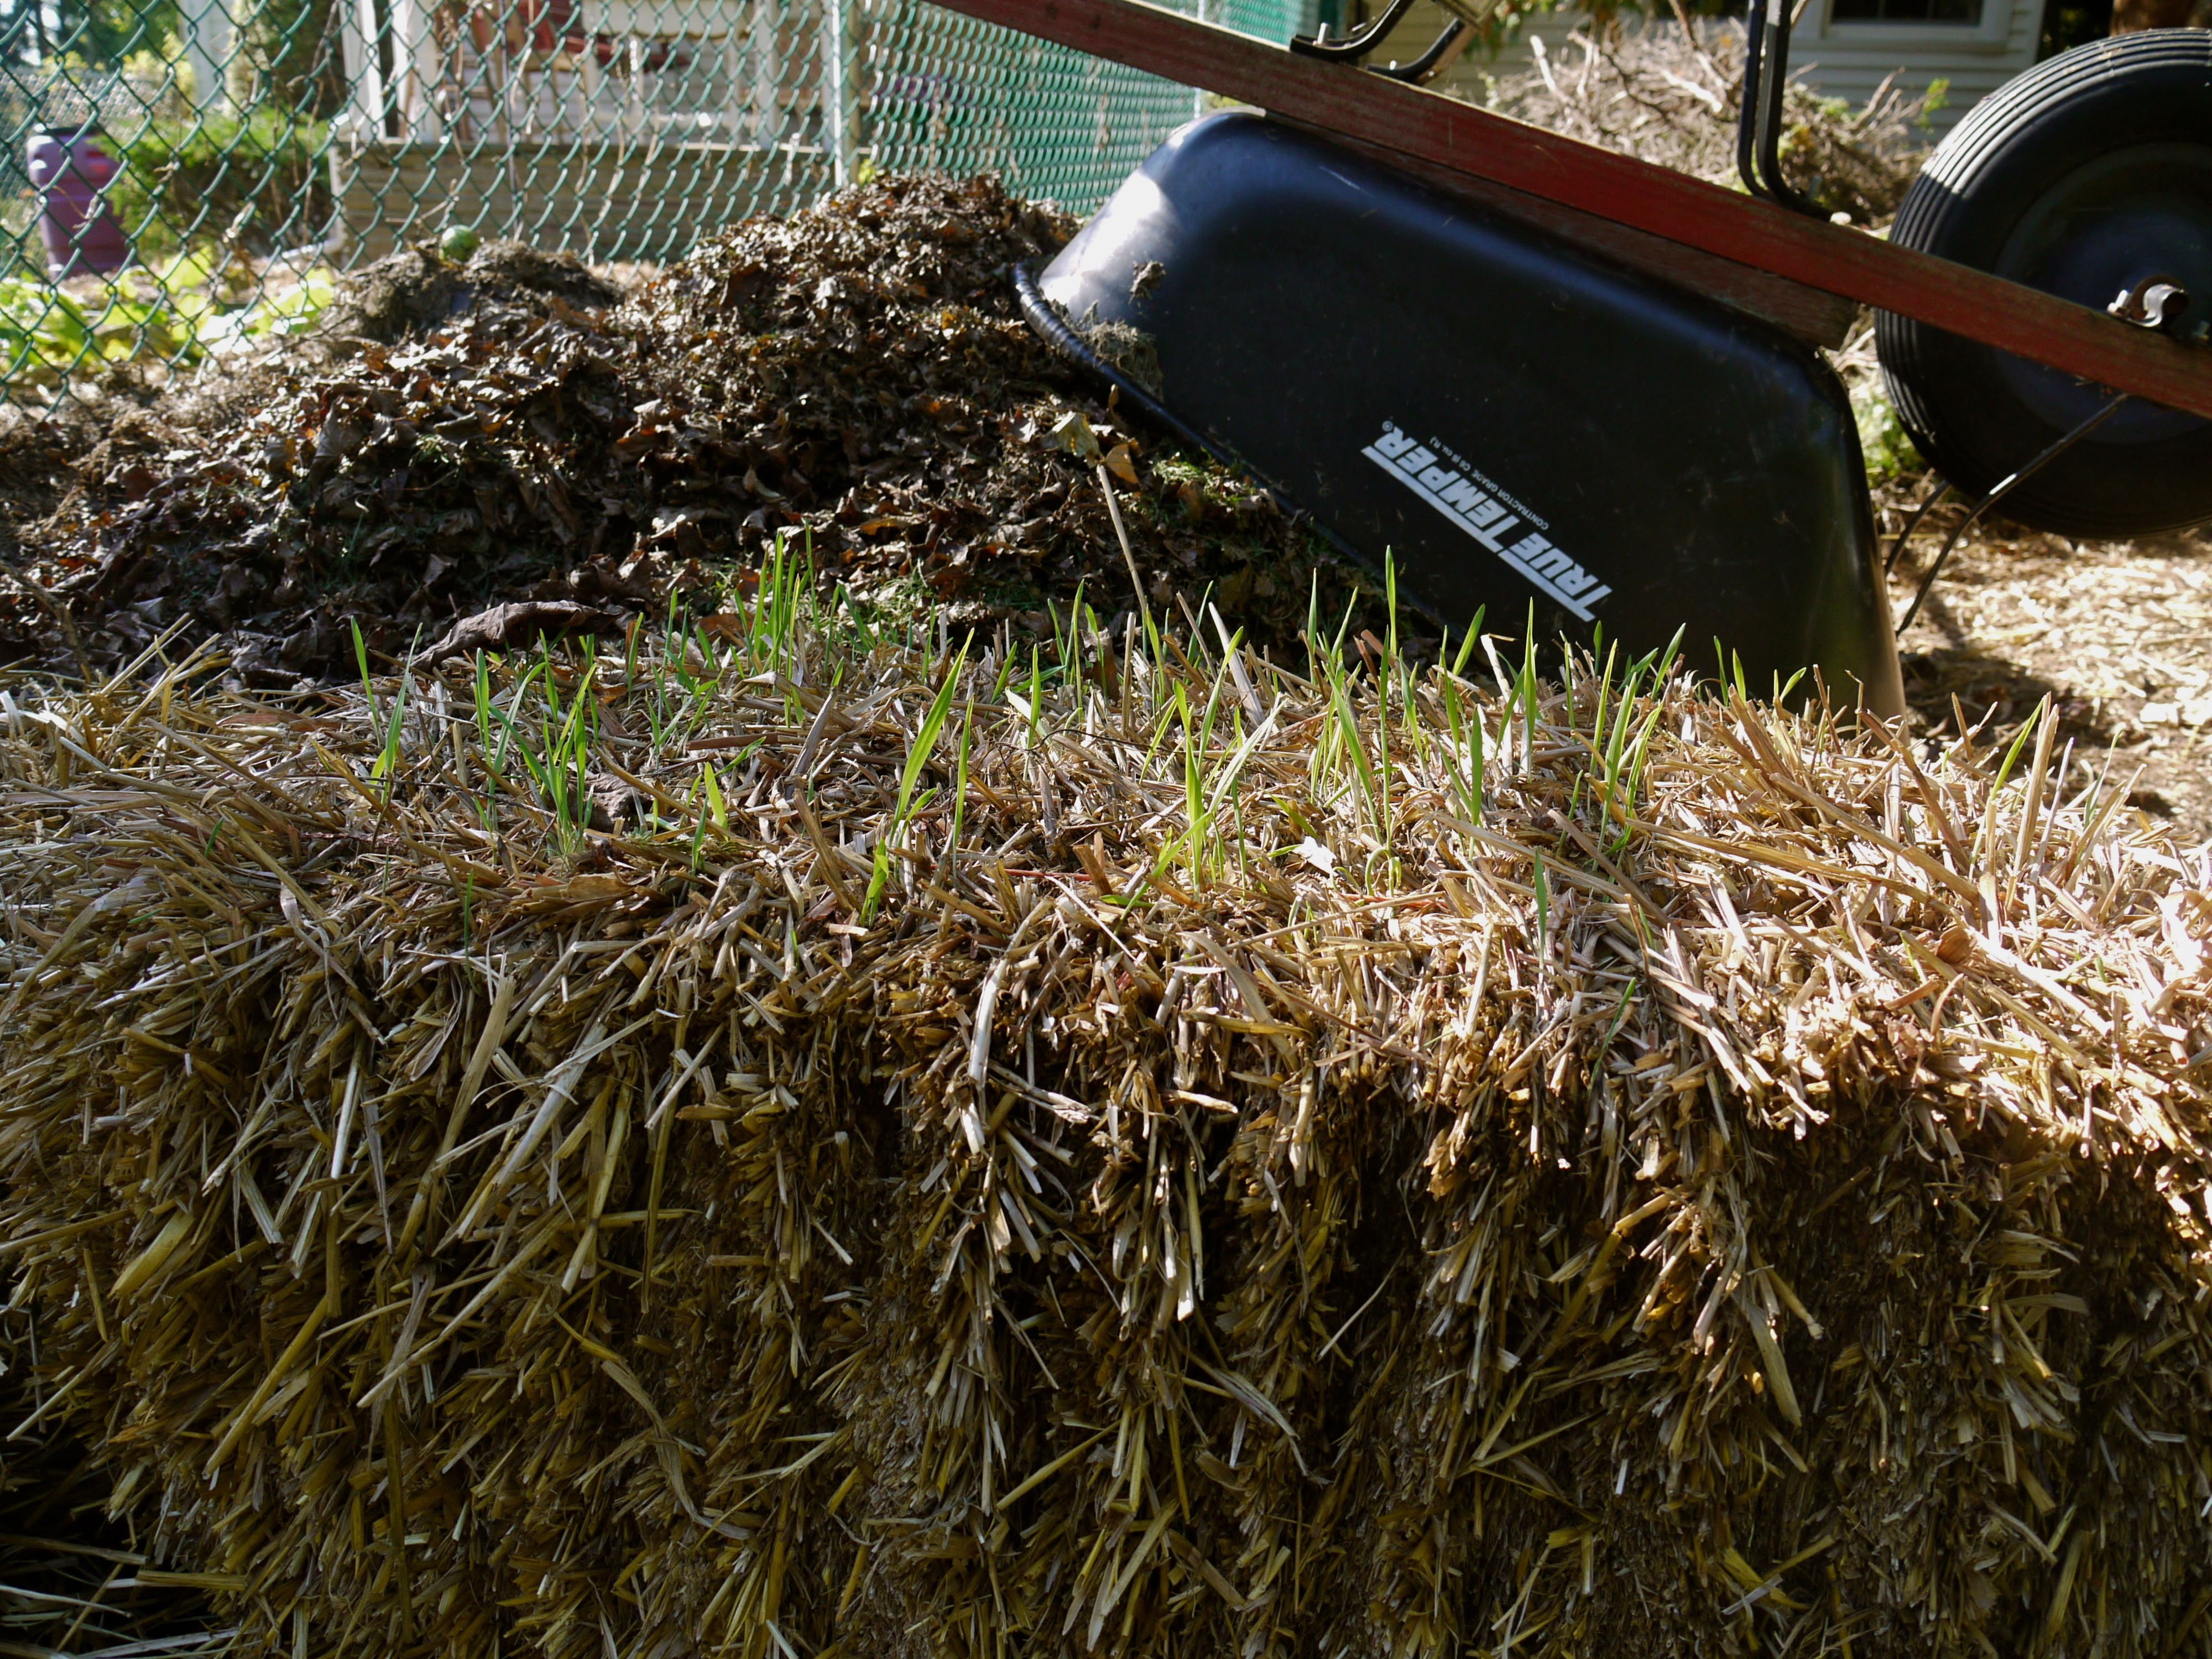 Hay vs. Straw in the Garden: Which is Better? | Gardens, Homesteads ...